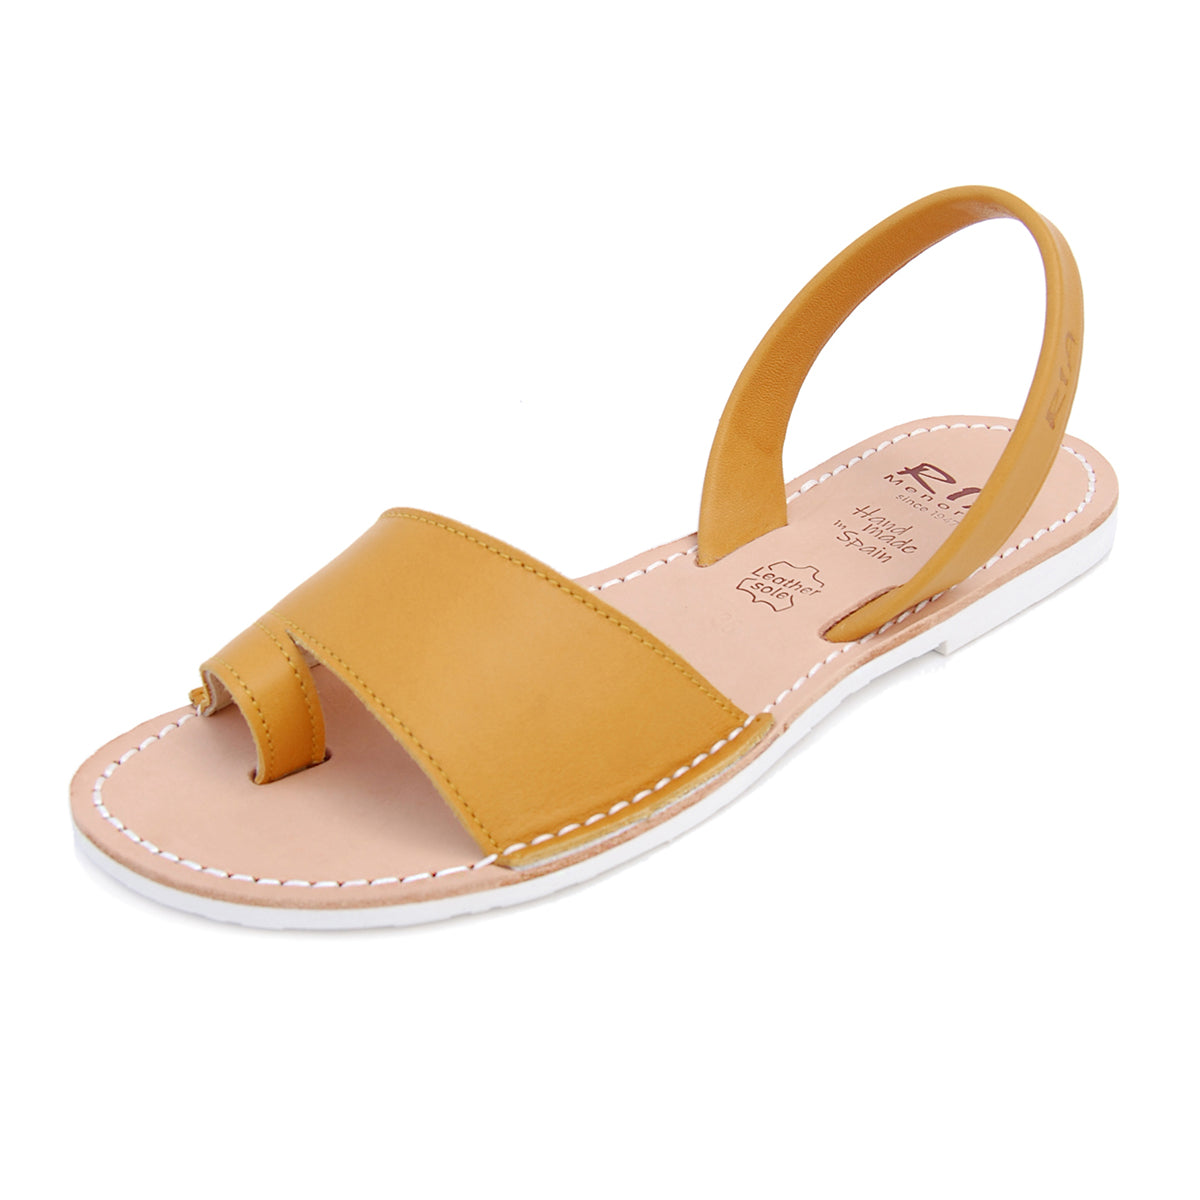 Costa Avarcas Menorcan Sandals in Sun